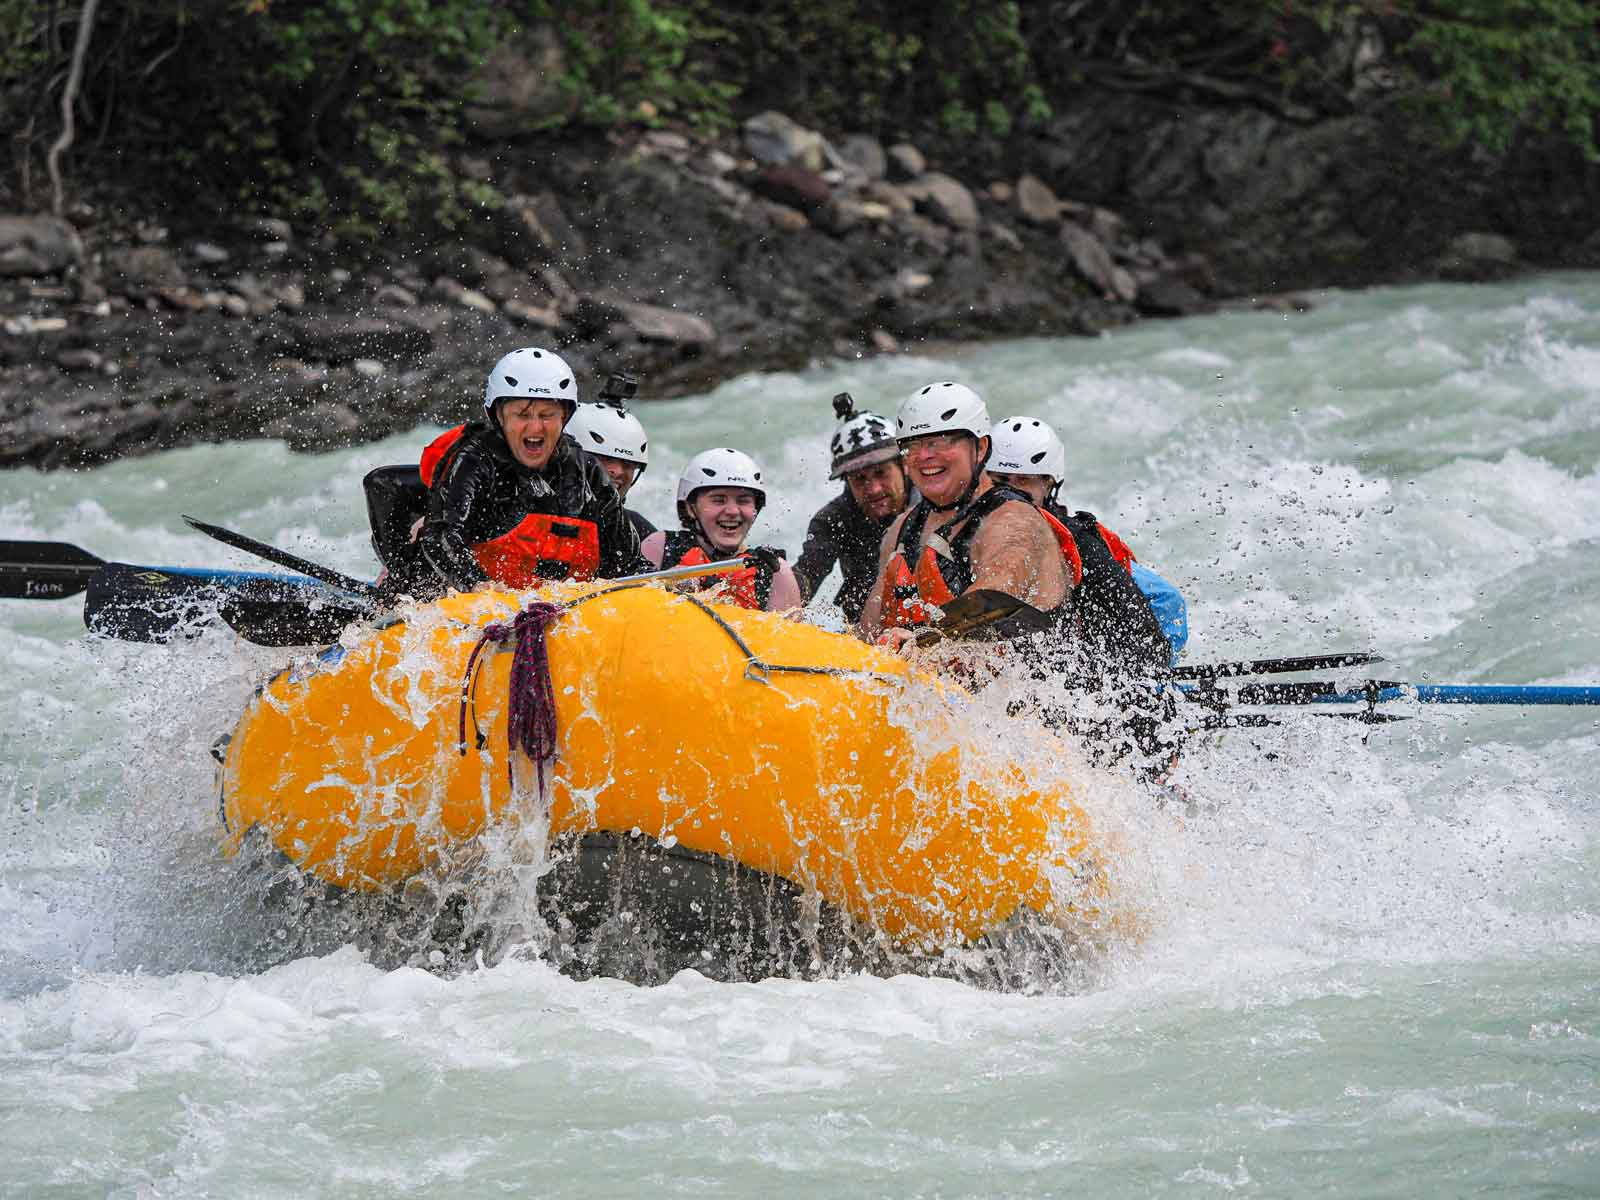 Whitewater rafting on the Kicking Horse River in Golden BC with Glacier Raft Company during summer in the Canadian Rockies